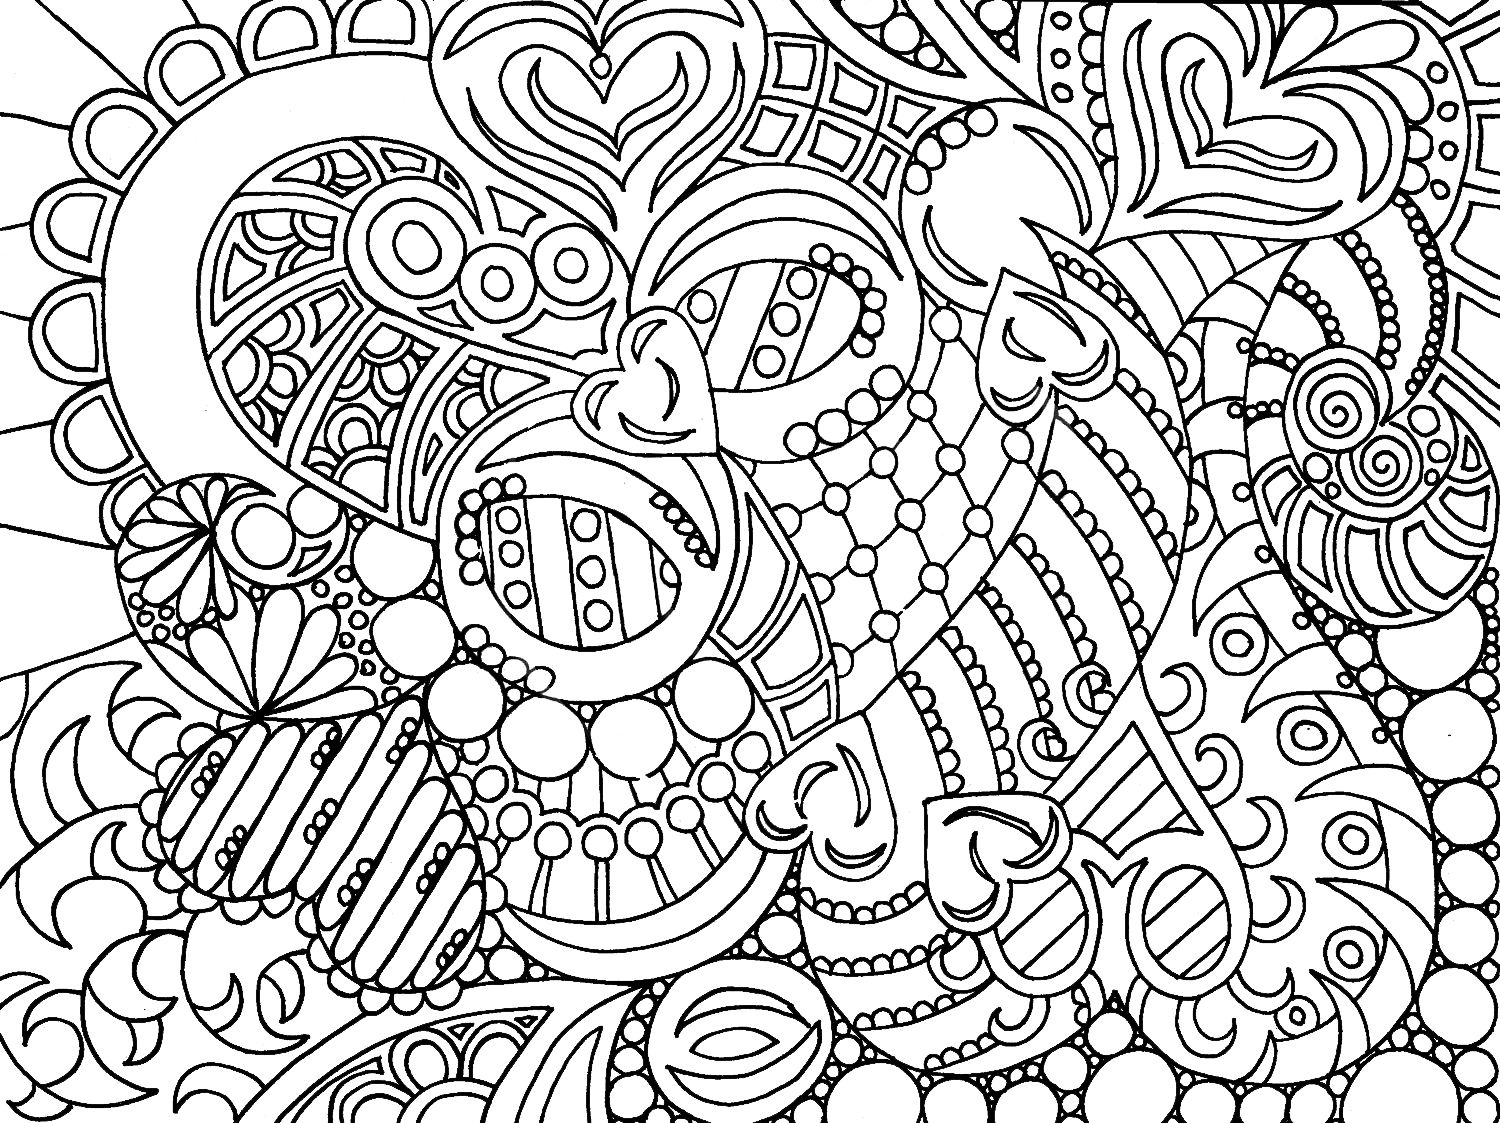 Colouring in for adults why - Advanced Coloring Pages Adults Coloring Pages Pictures Imagixs